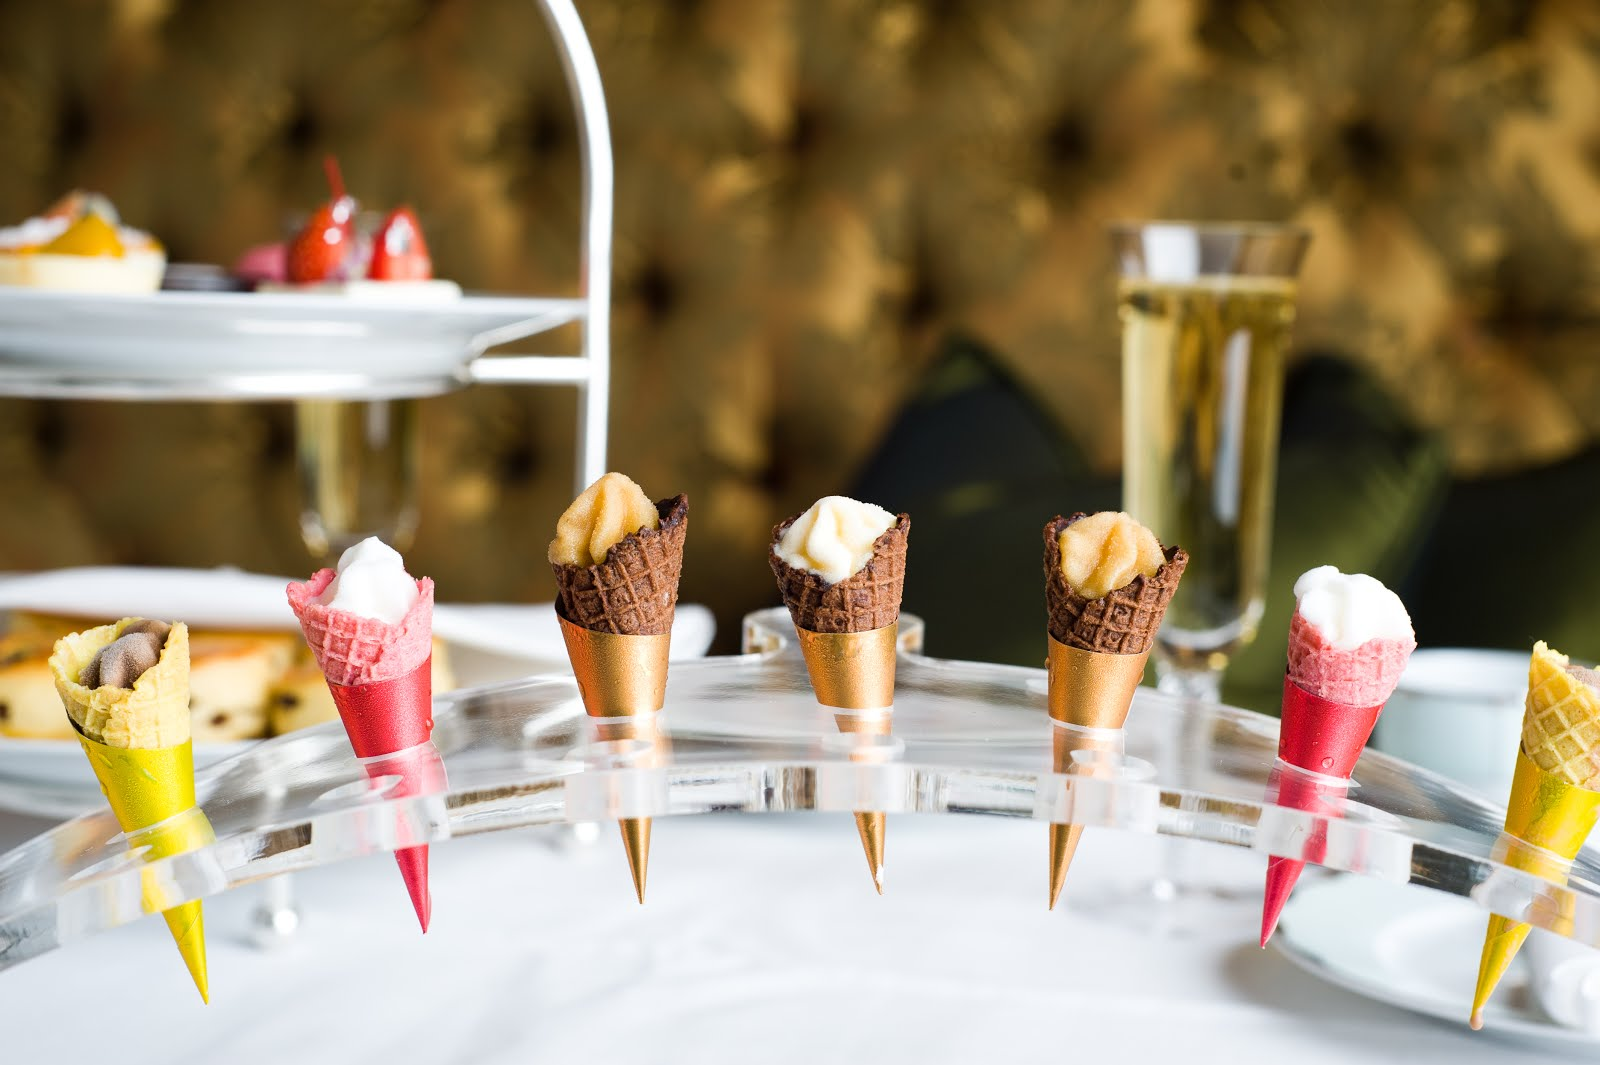 Ice Cream Champagne Afternoon Tea at the Dorchester, review